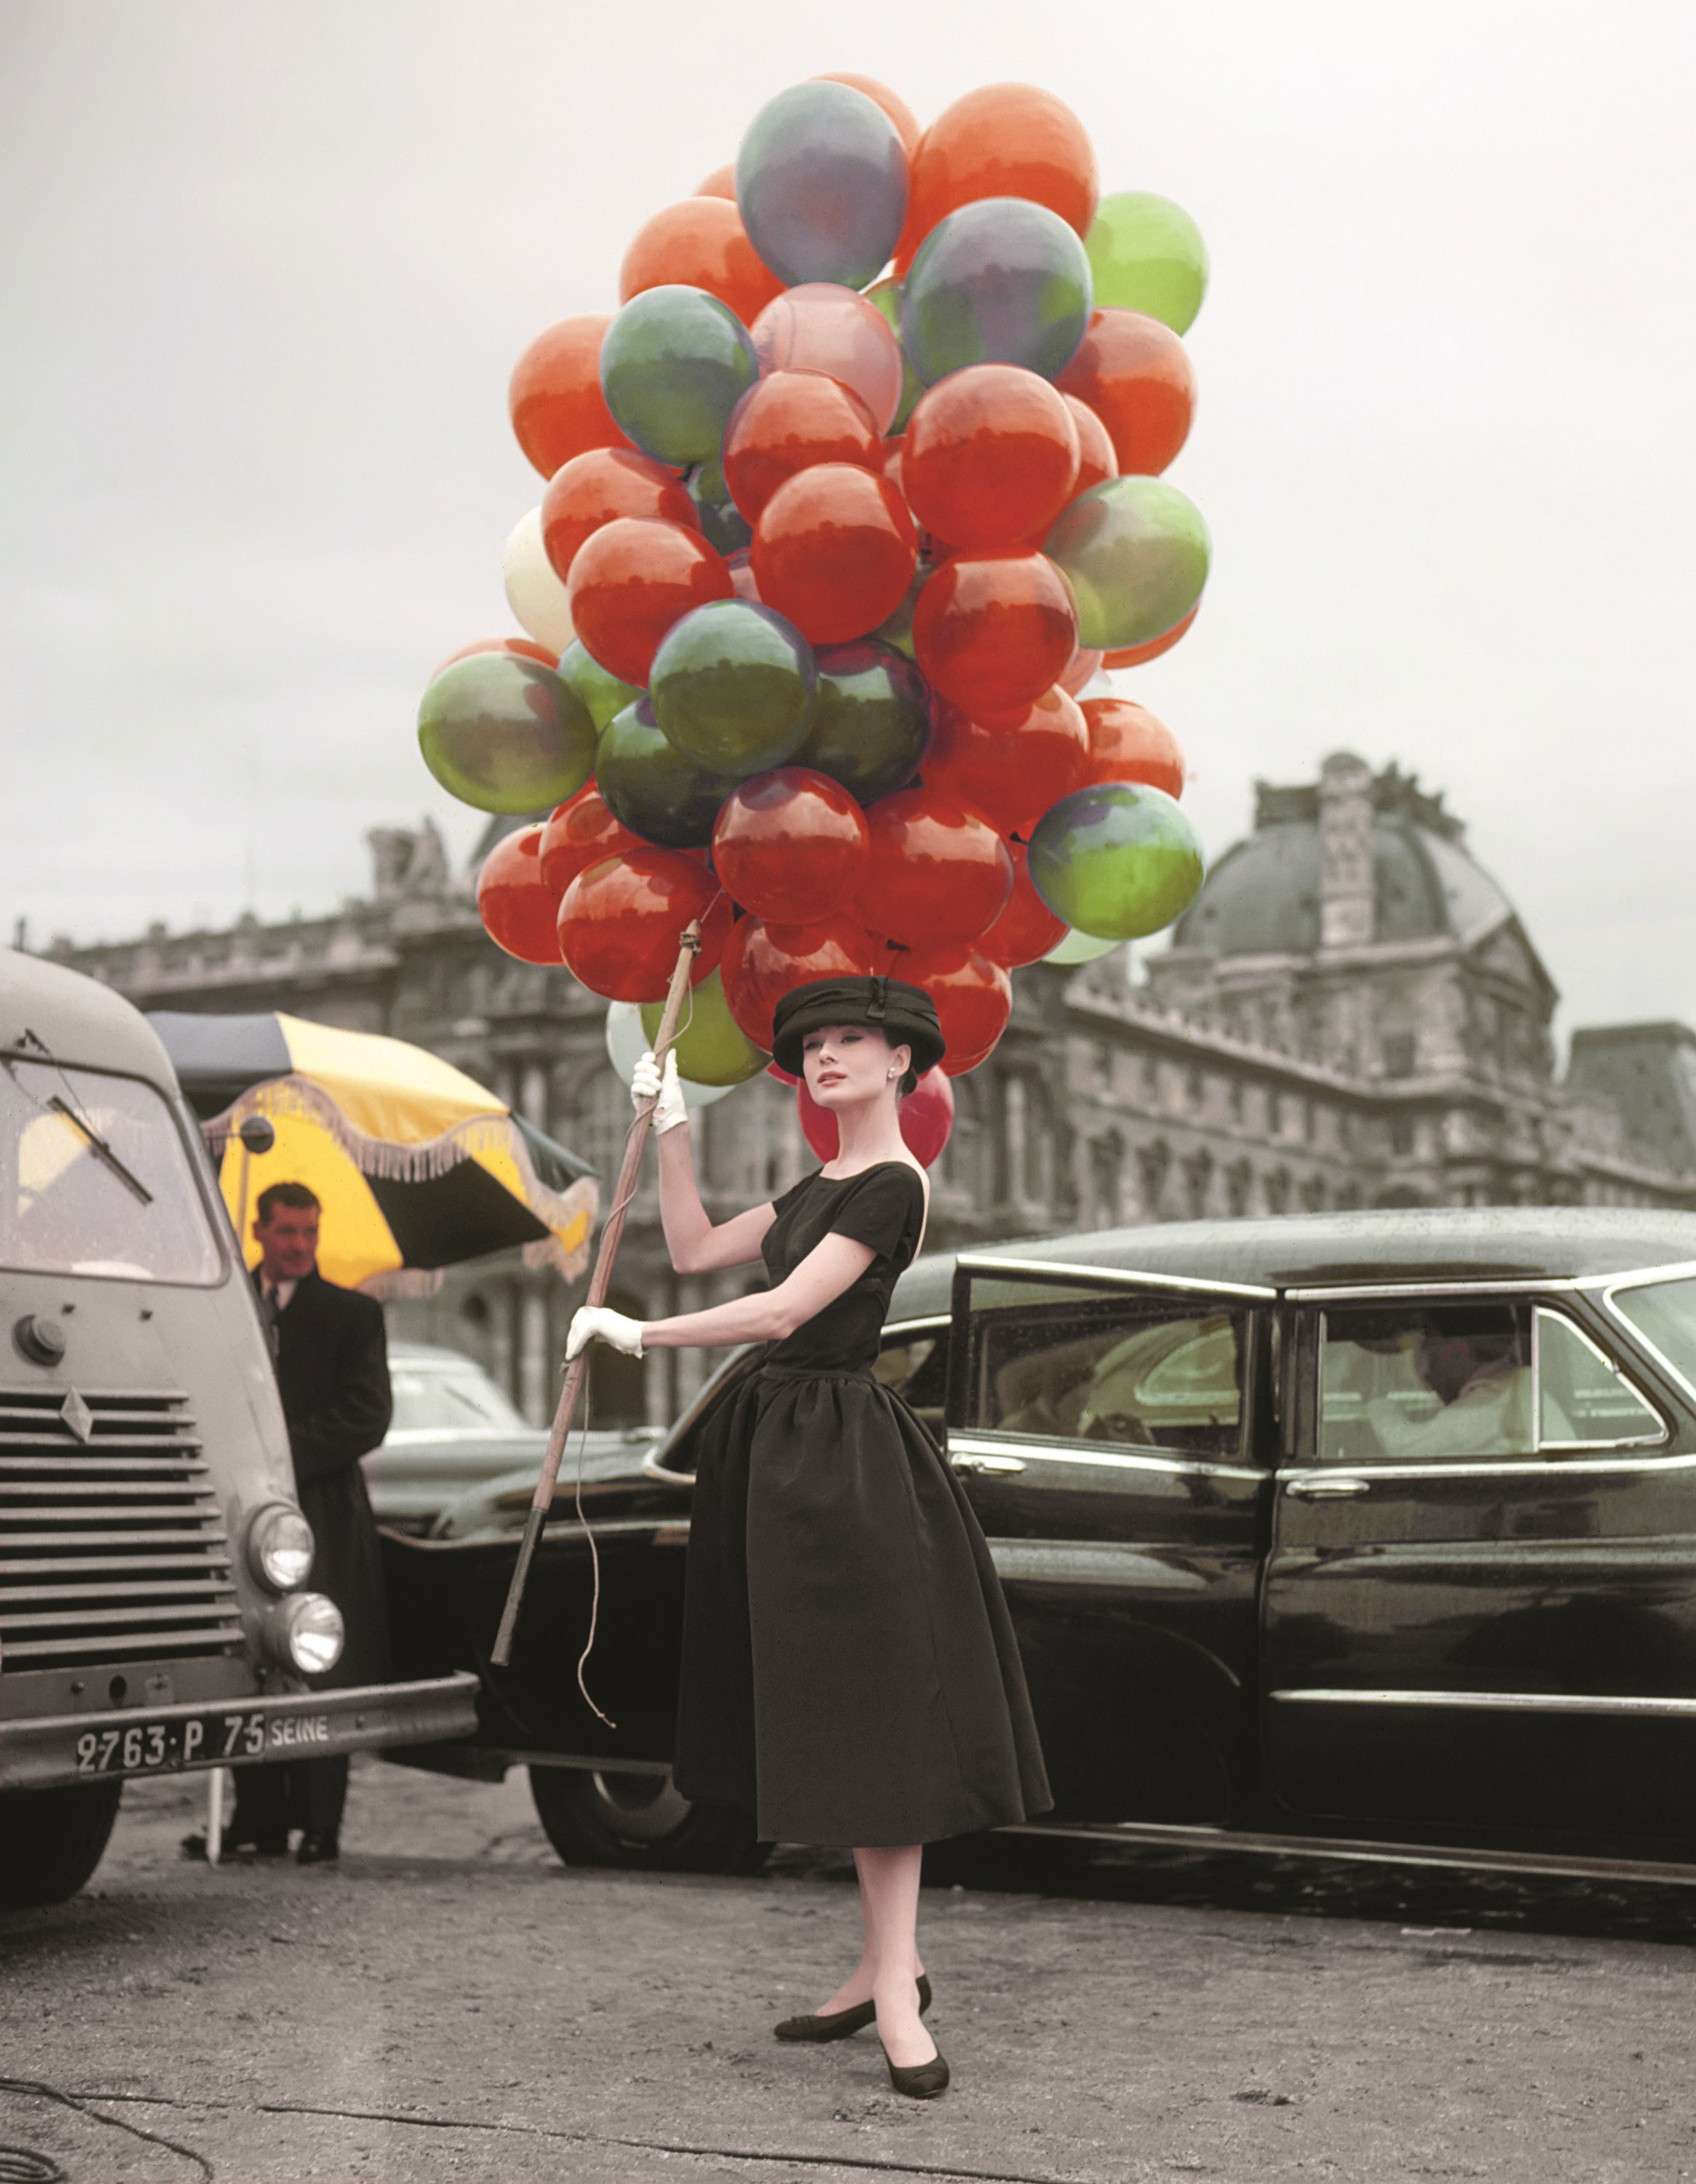 audrey-hepburn-posing-on-location-at-the-jardin-des-tuileries-in-paris-while-filming-22funny-face-22-hepburn-is-wearing-a-dress-by-givenchy-nmn.jpg